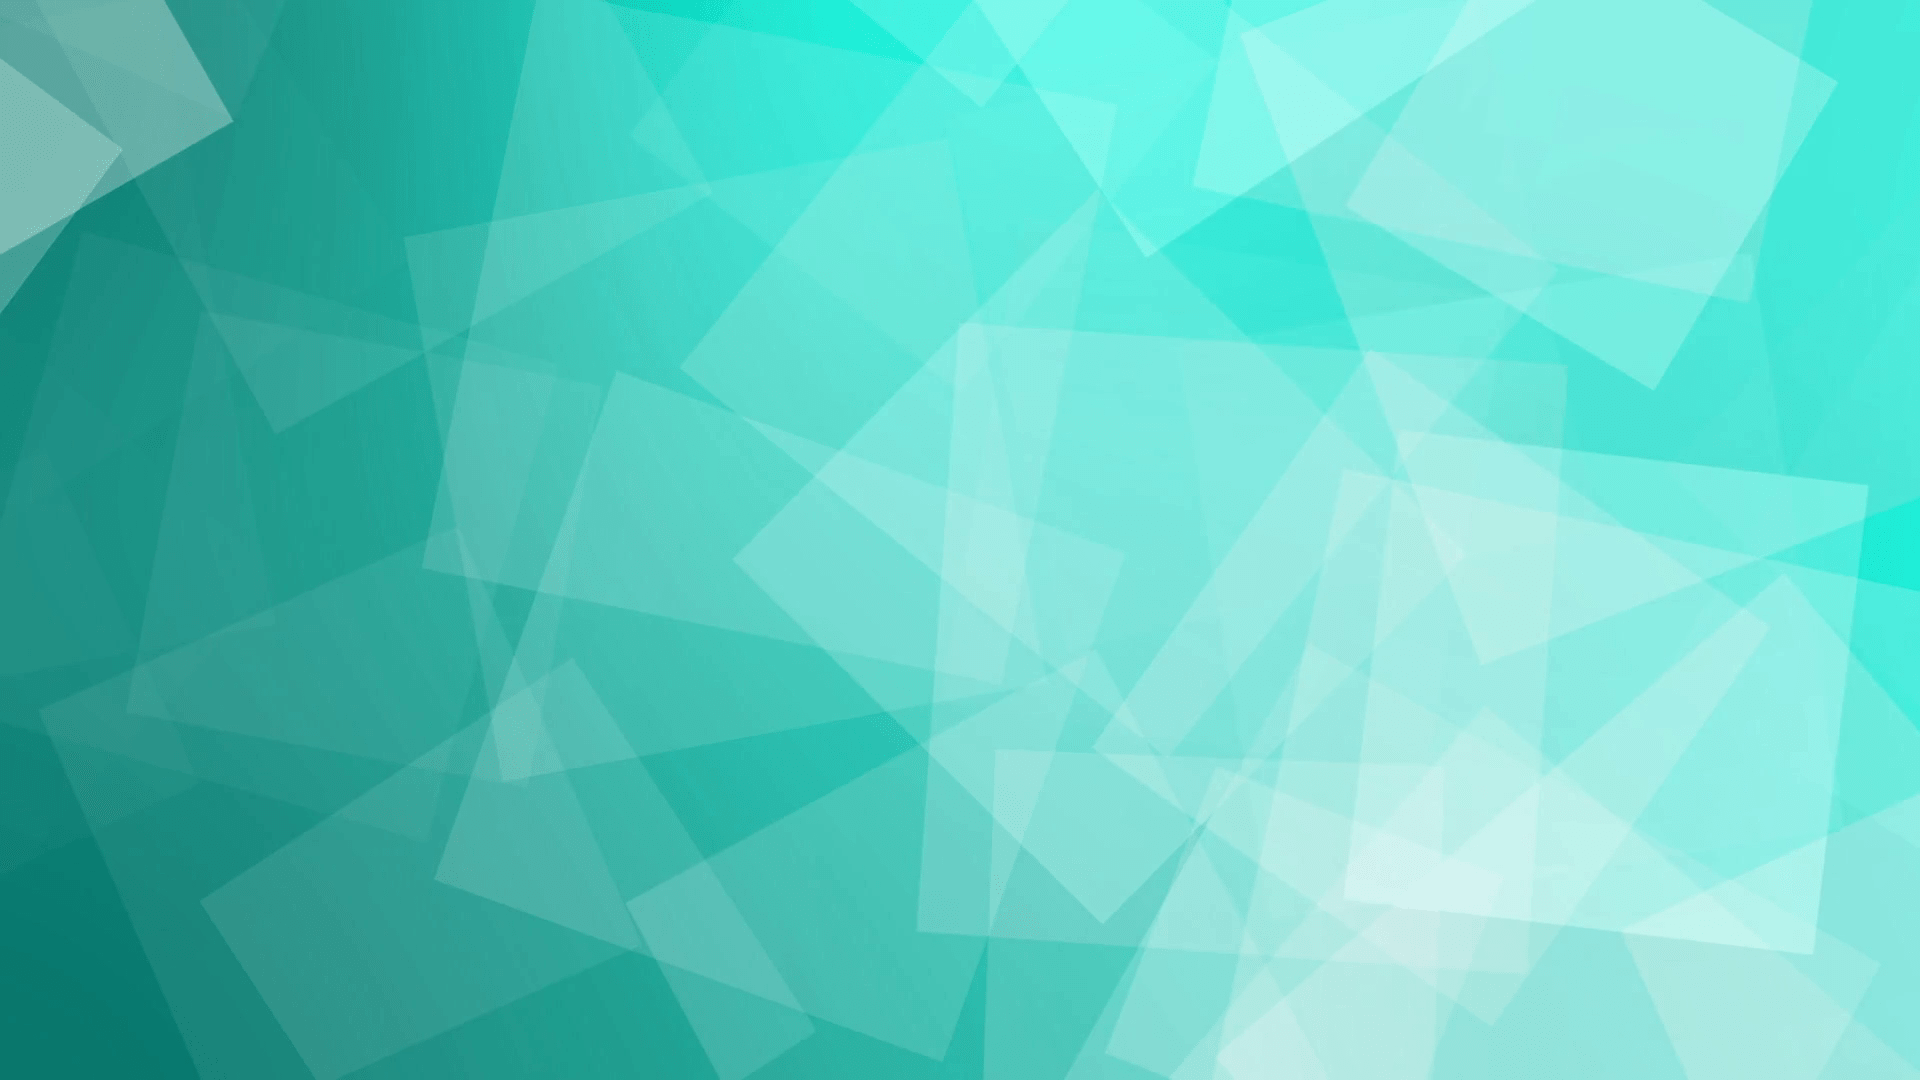 3d Diamond Live Wallpaper Teal Backgrounds Download Free Pixelstalk Net